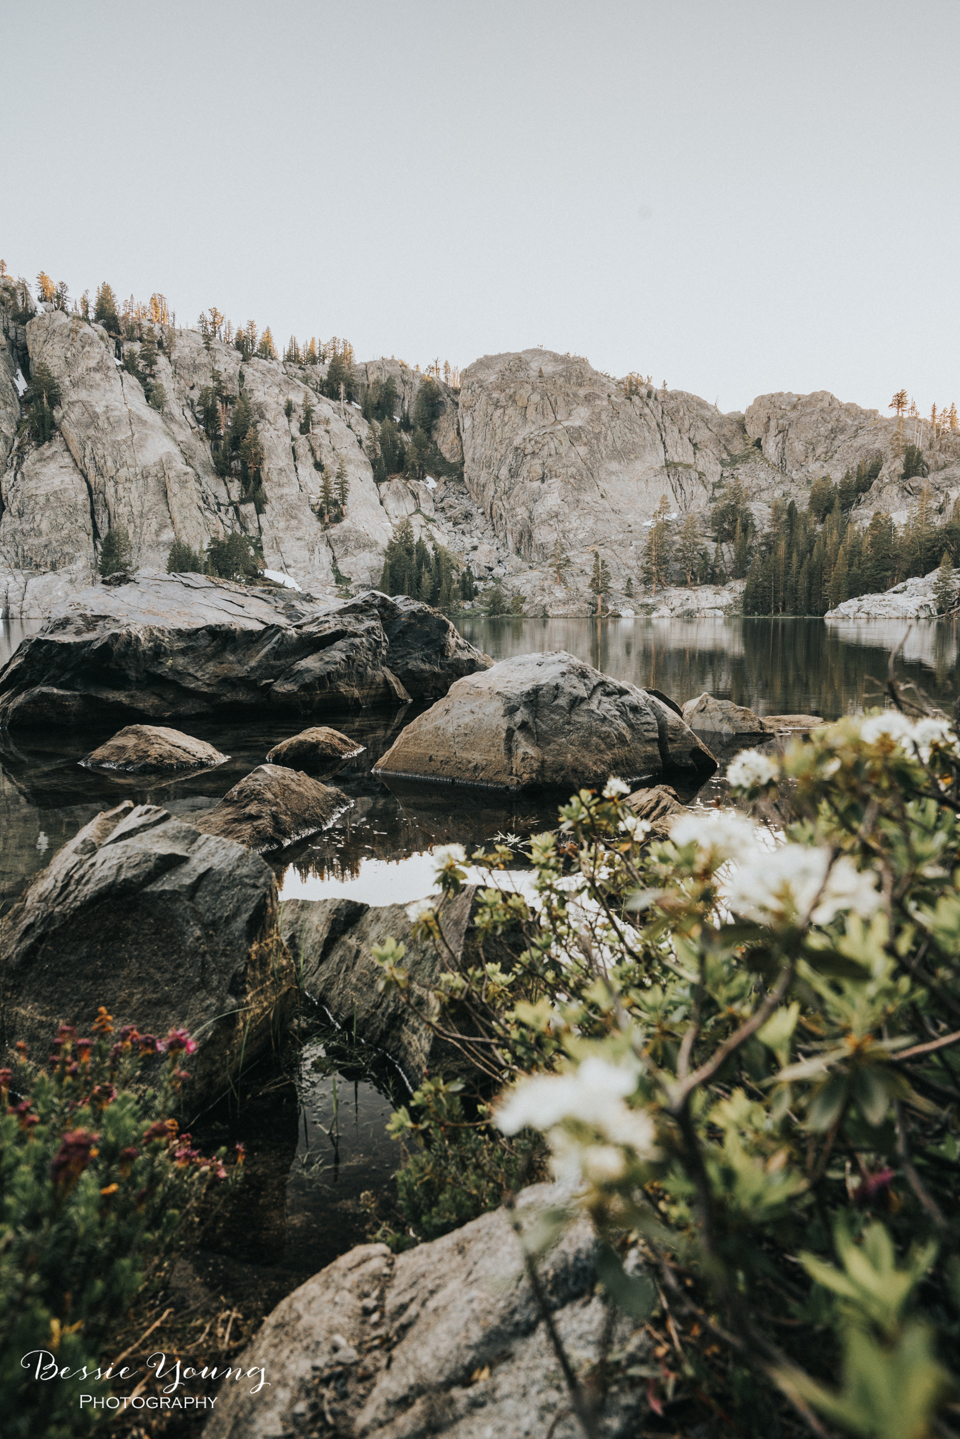 Ansel Adams Wilderness Backpacking day 3 and 4 - Bessie Young Photography-55.jpg